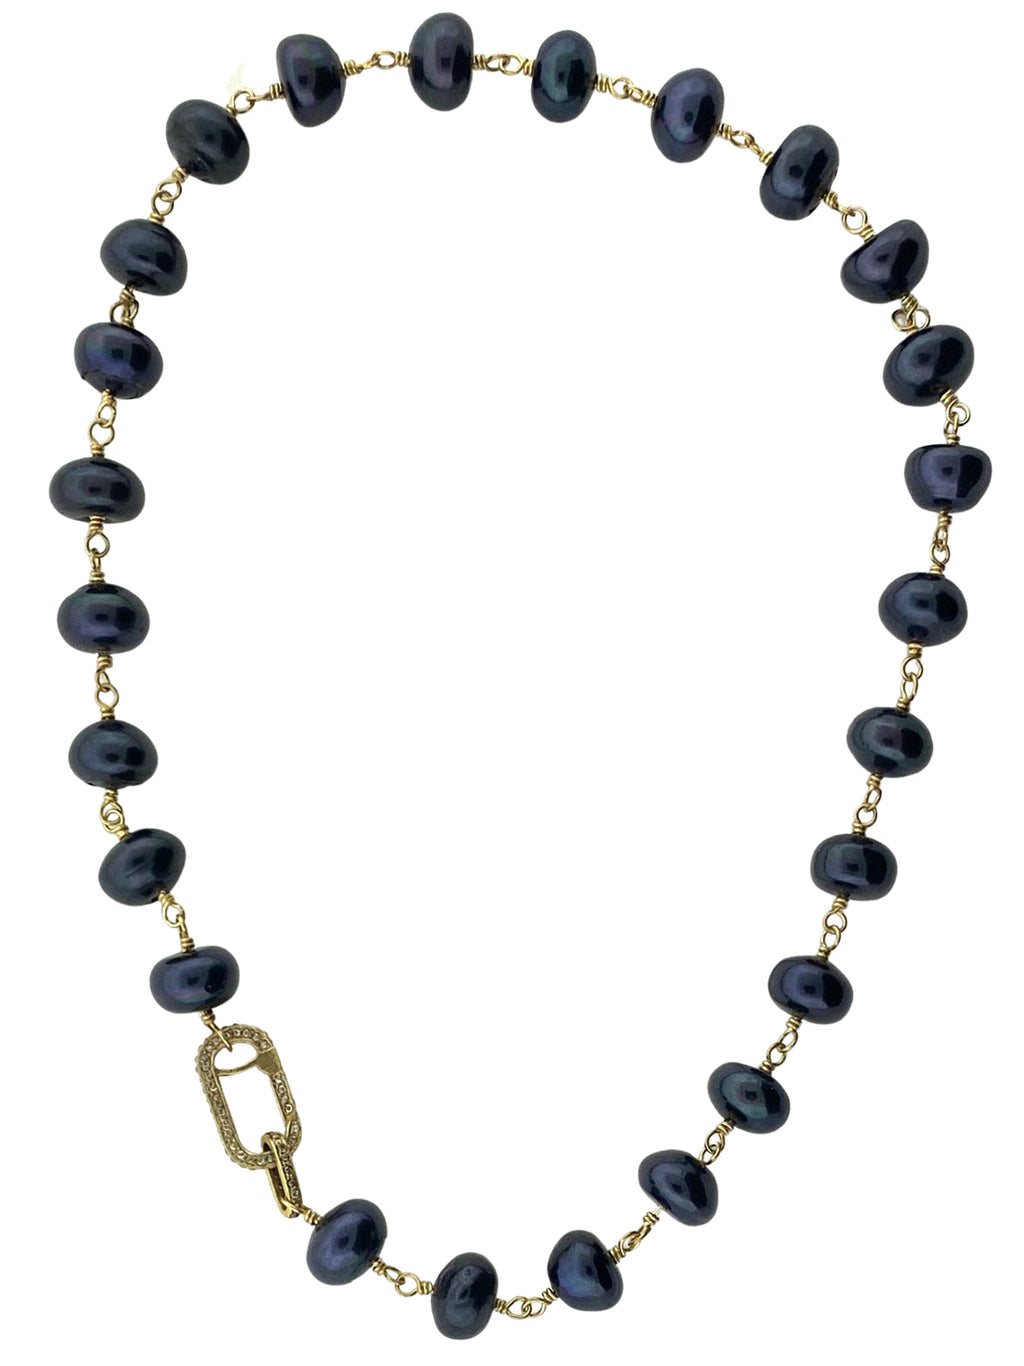 Brass Wire Wrapped Navy Freshwater Pearls With a Pave Diamond Clasp